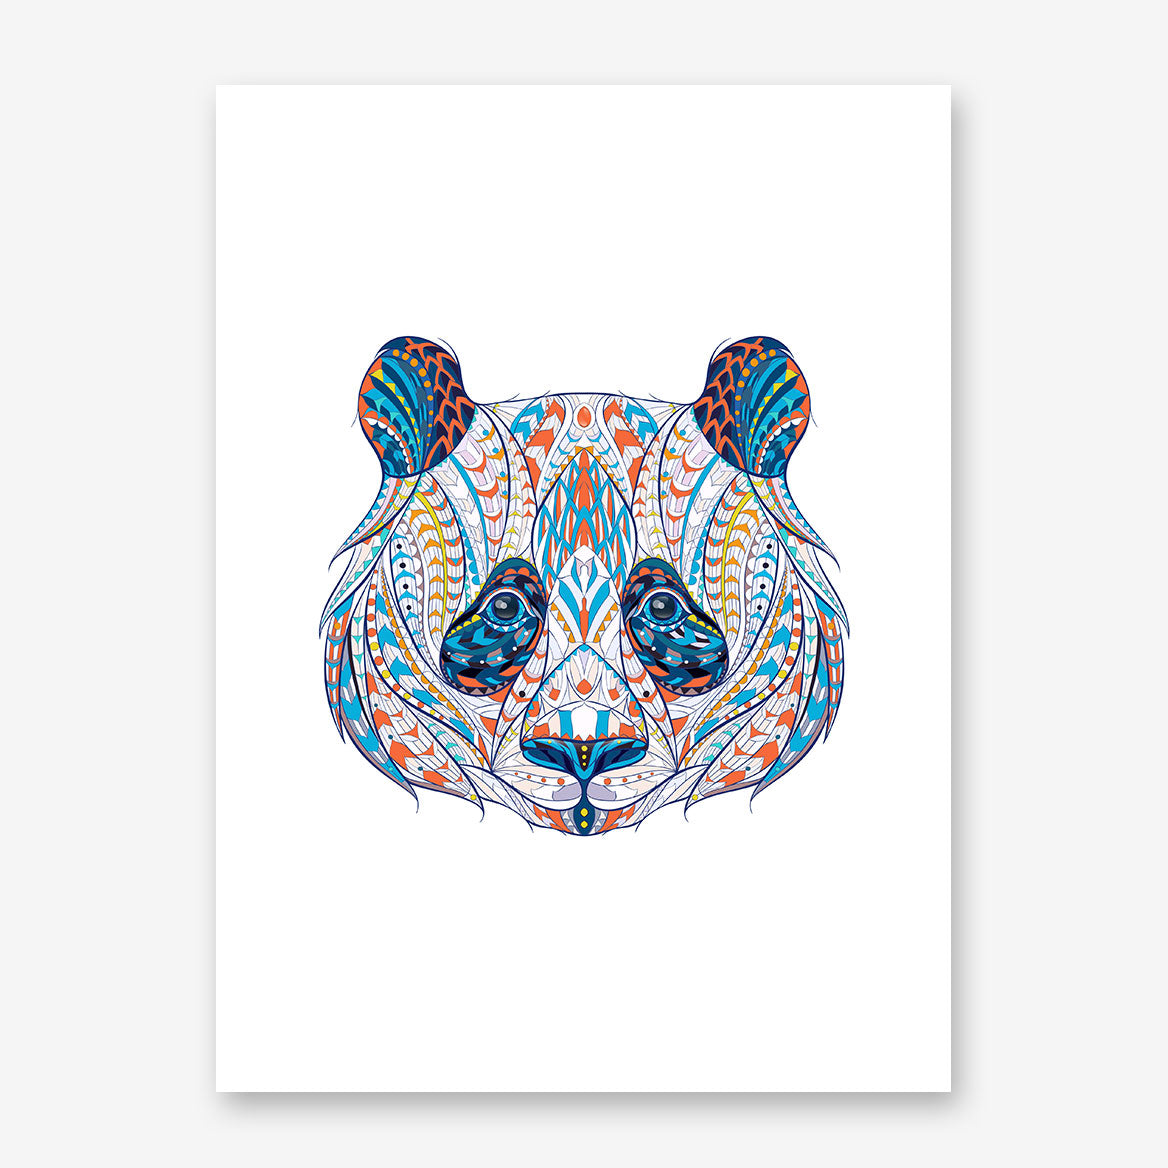 Patterned poster print with a panda's head on white background